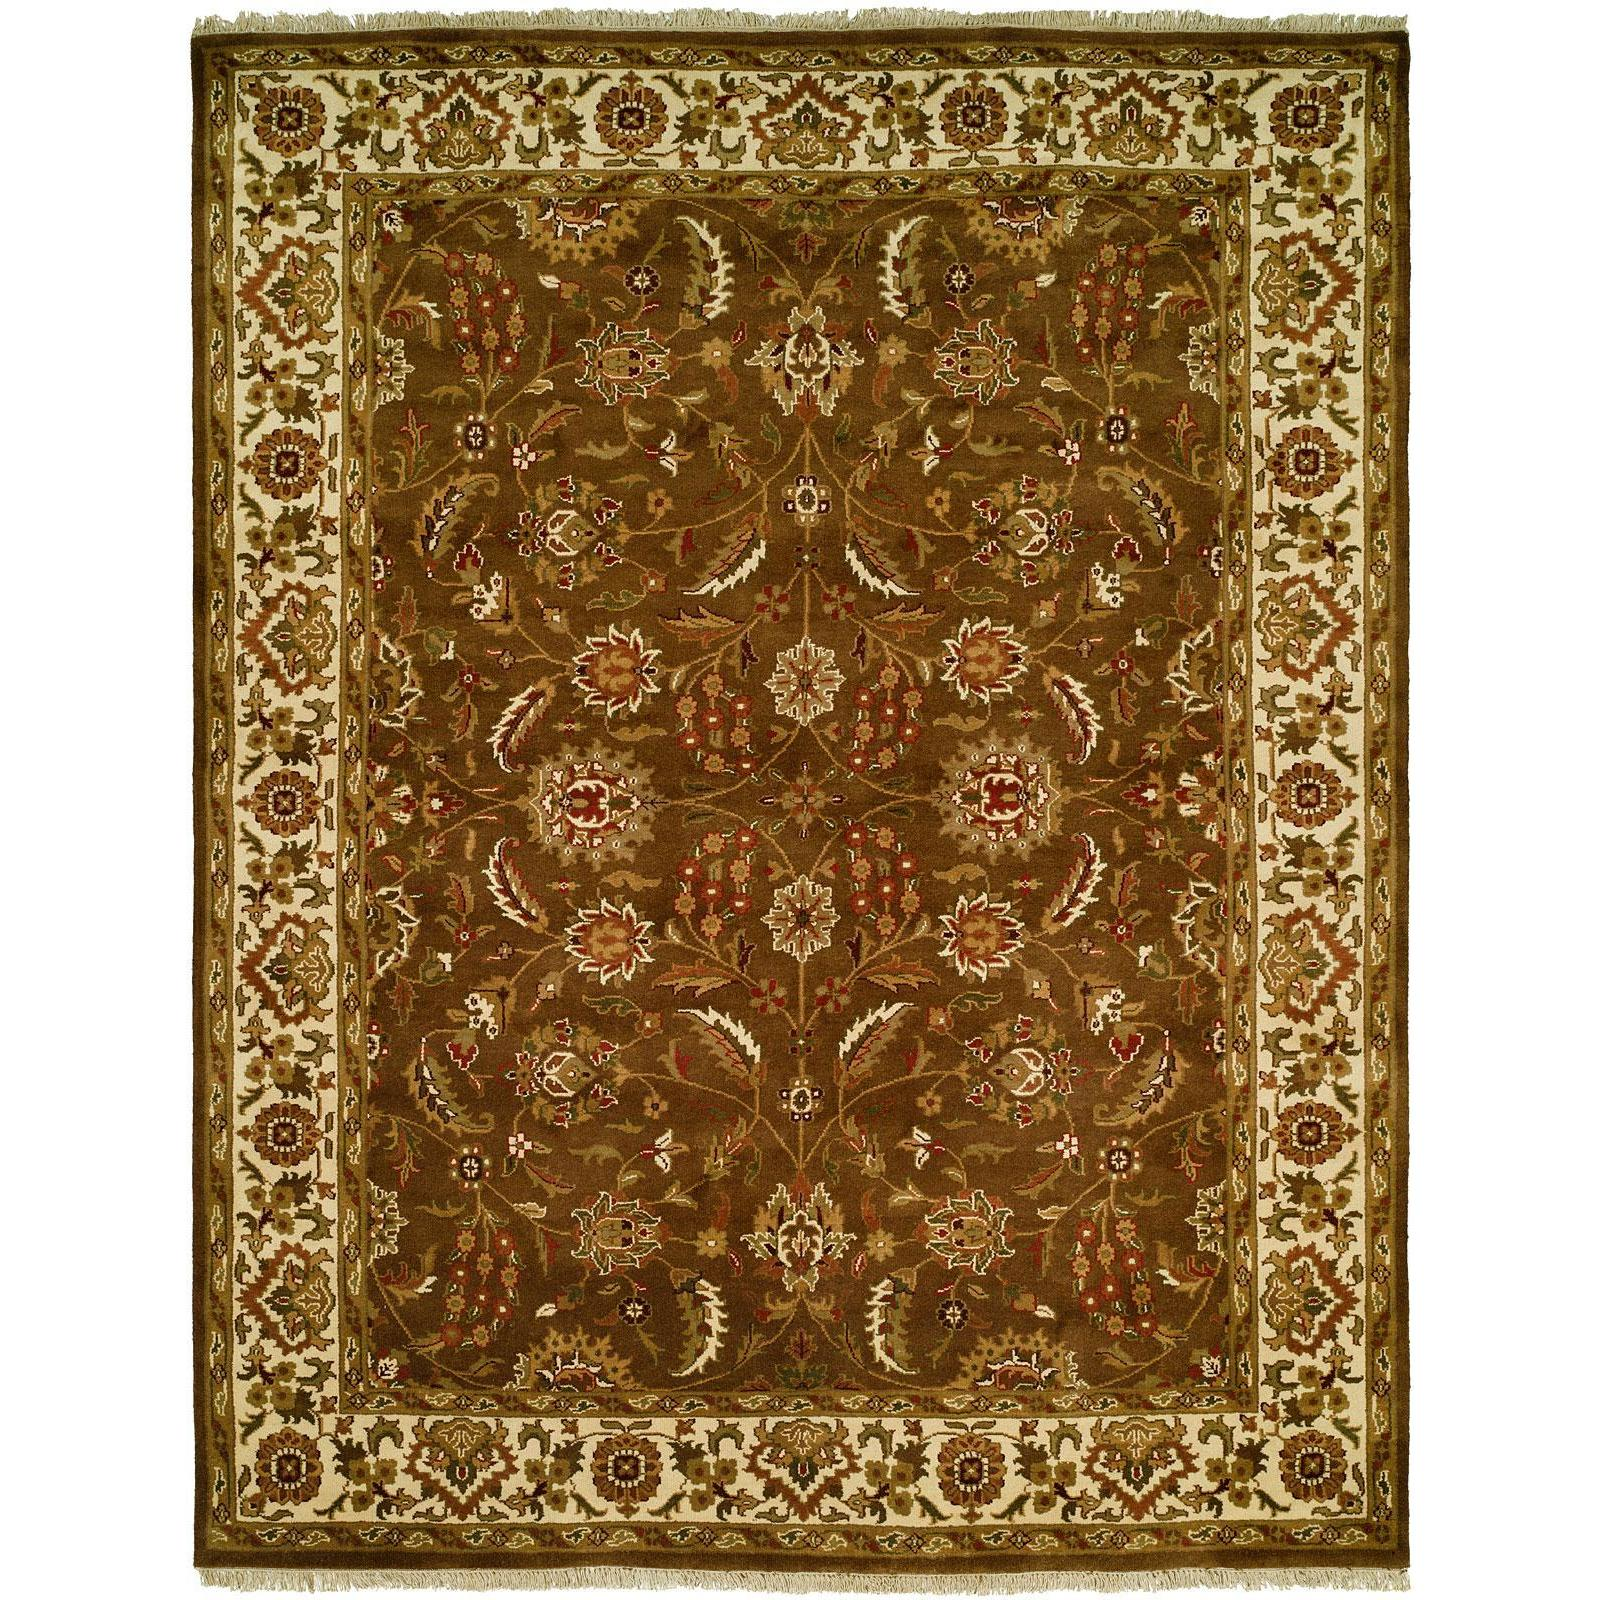 Lateef Earth Tones Ivory Wool Hand Knotted Formal Area Rug 6 Square 6 Square